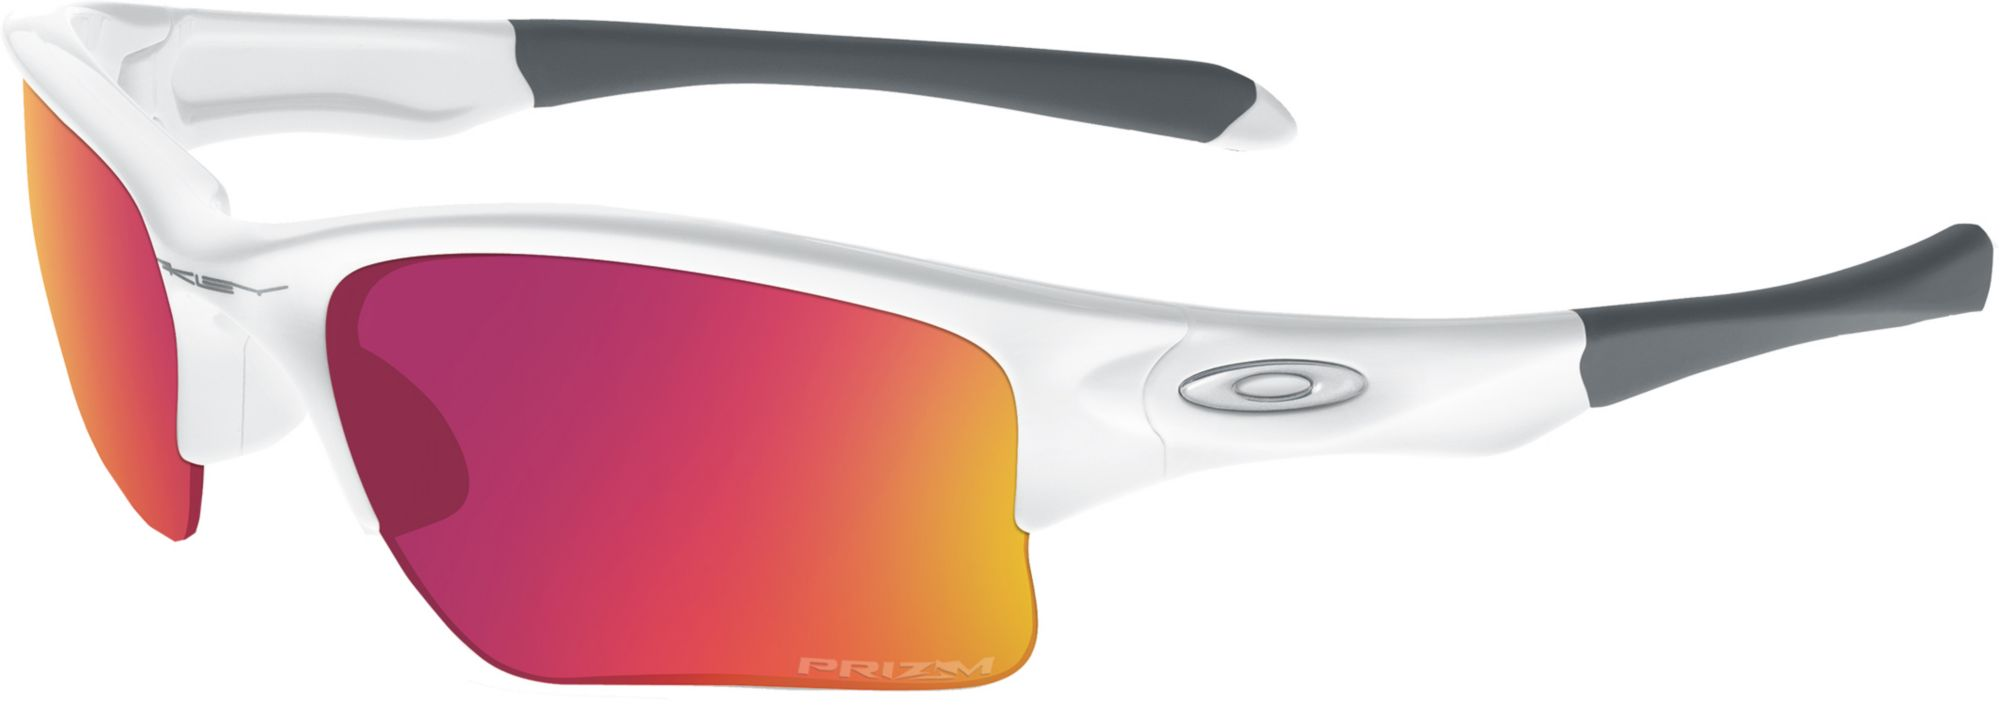 oakley online retailers  product image oakley kids' prizm baseball quarter jacket sunglasses